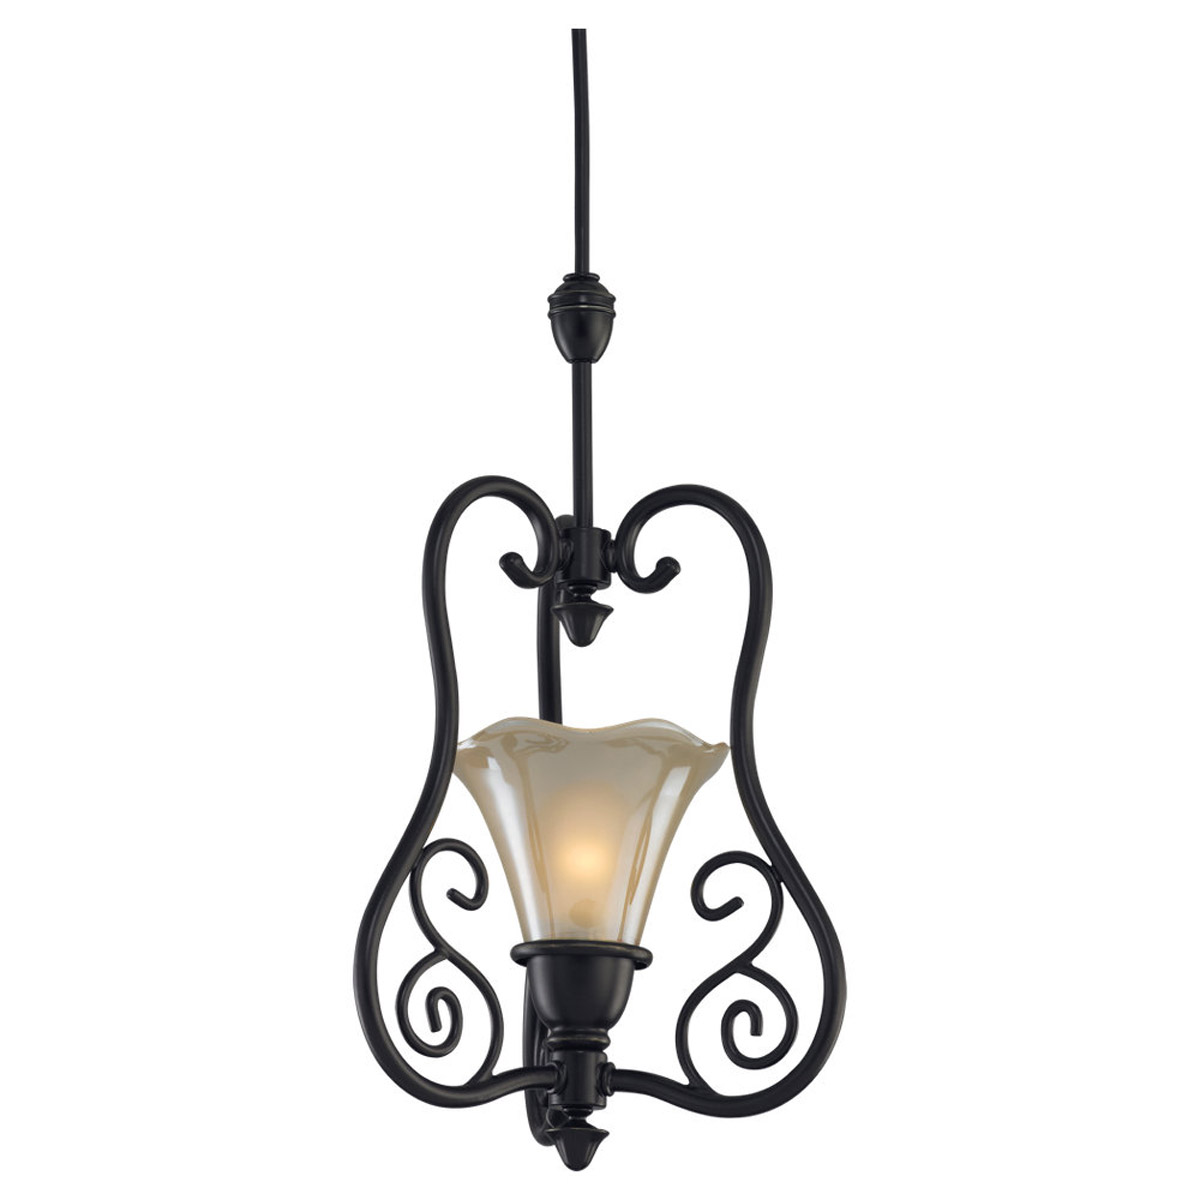 Sea Gull Lighting Trudy 1 + 1 Light Rail / Ceiling Pendant in Antique Bronze 94565-71